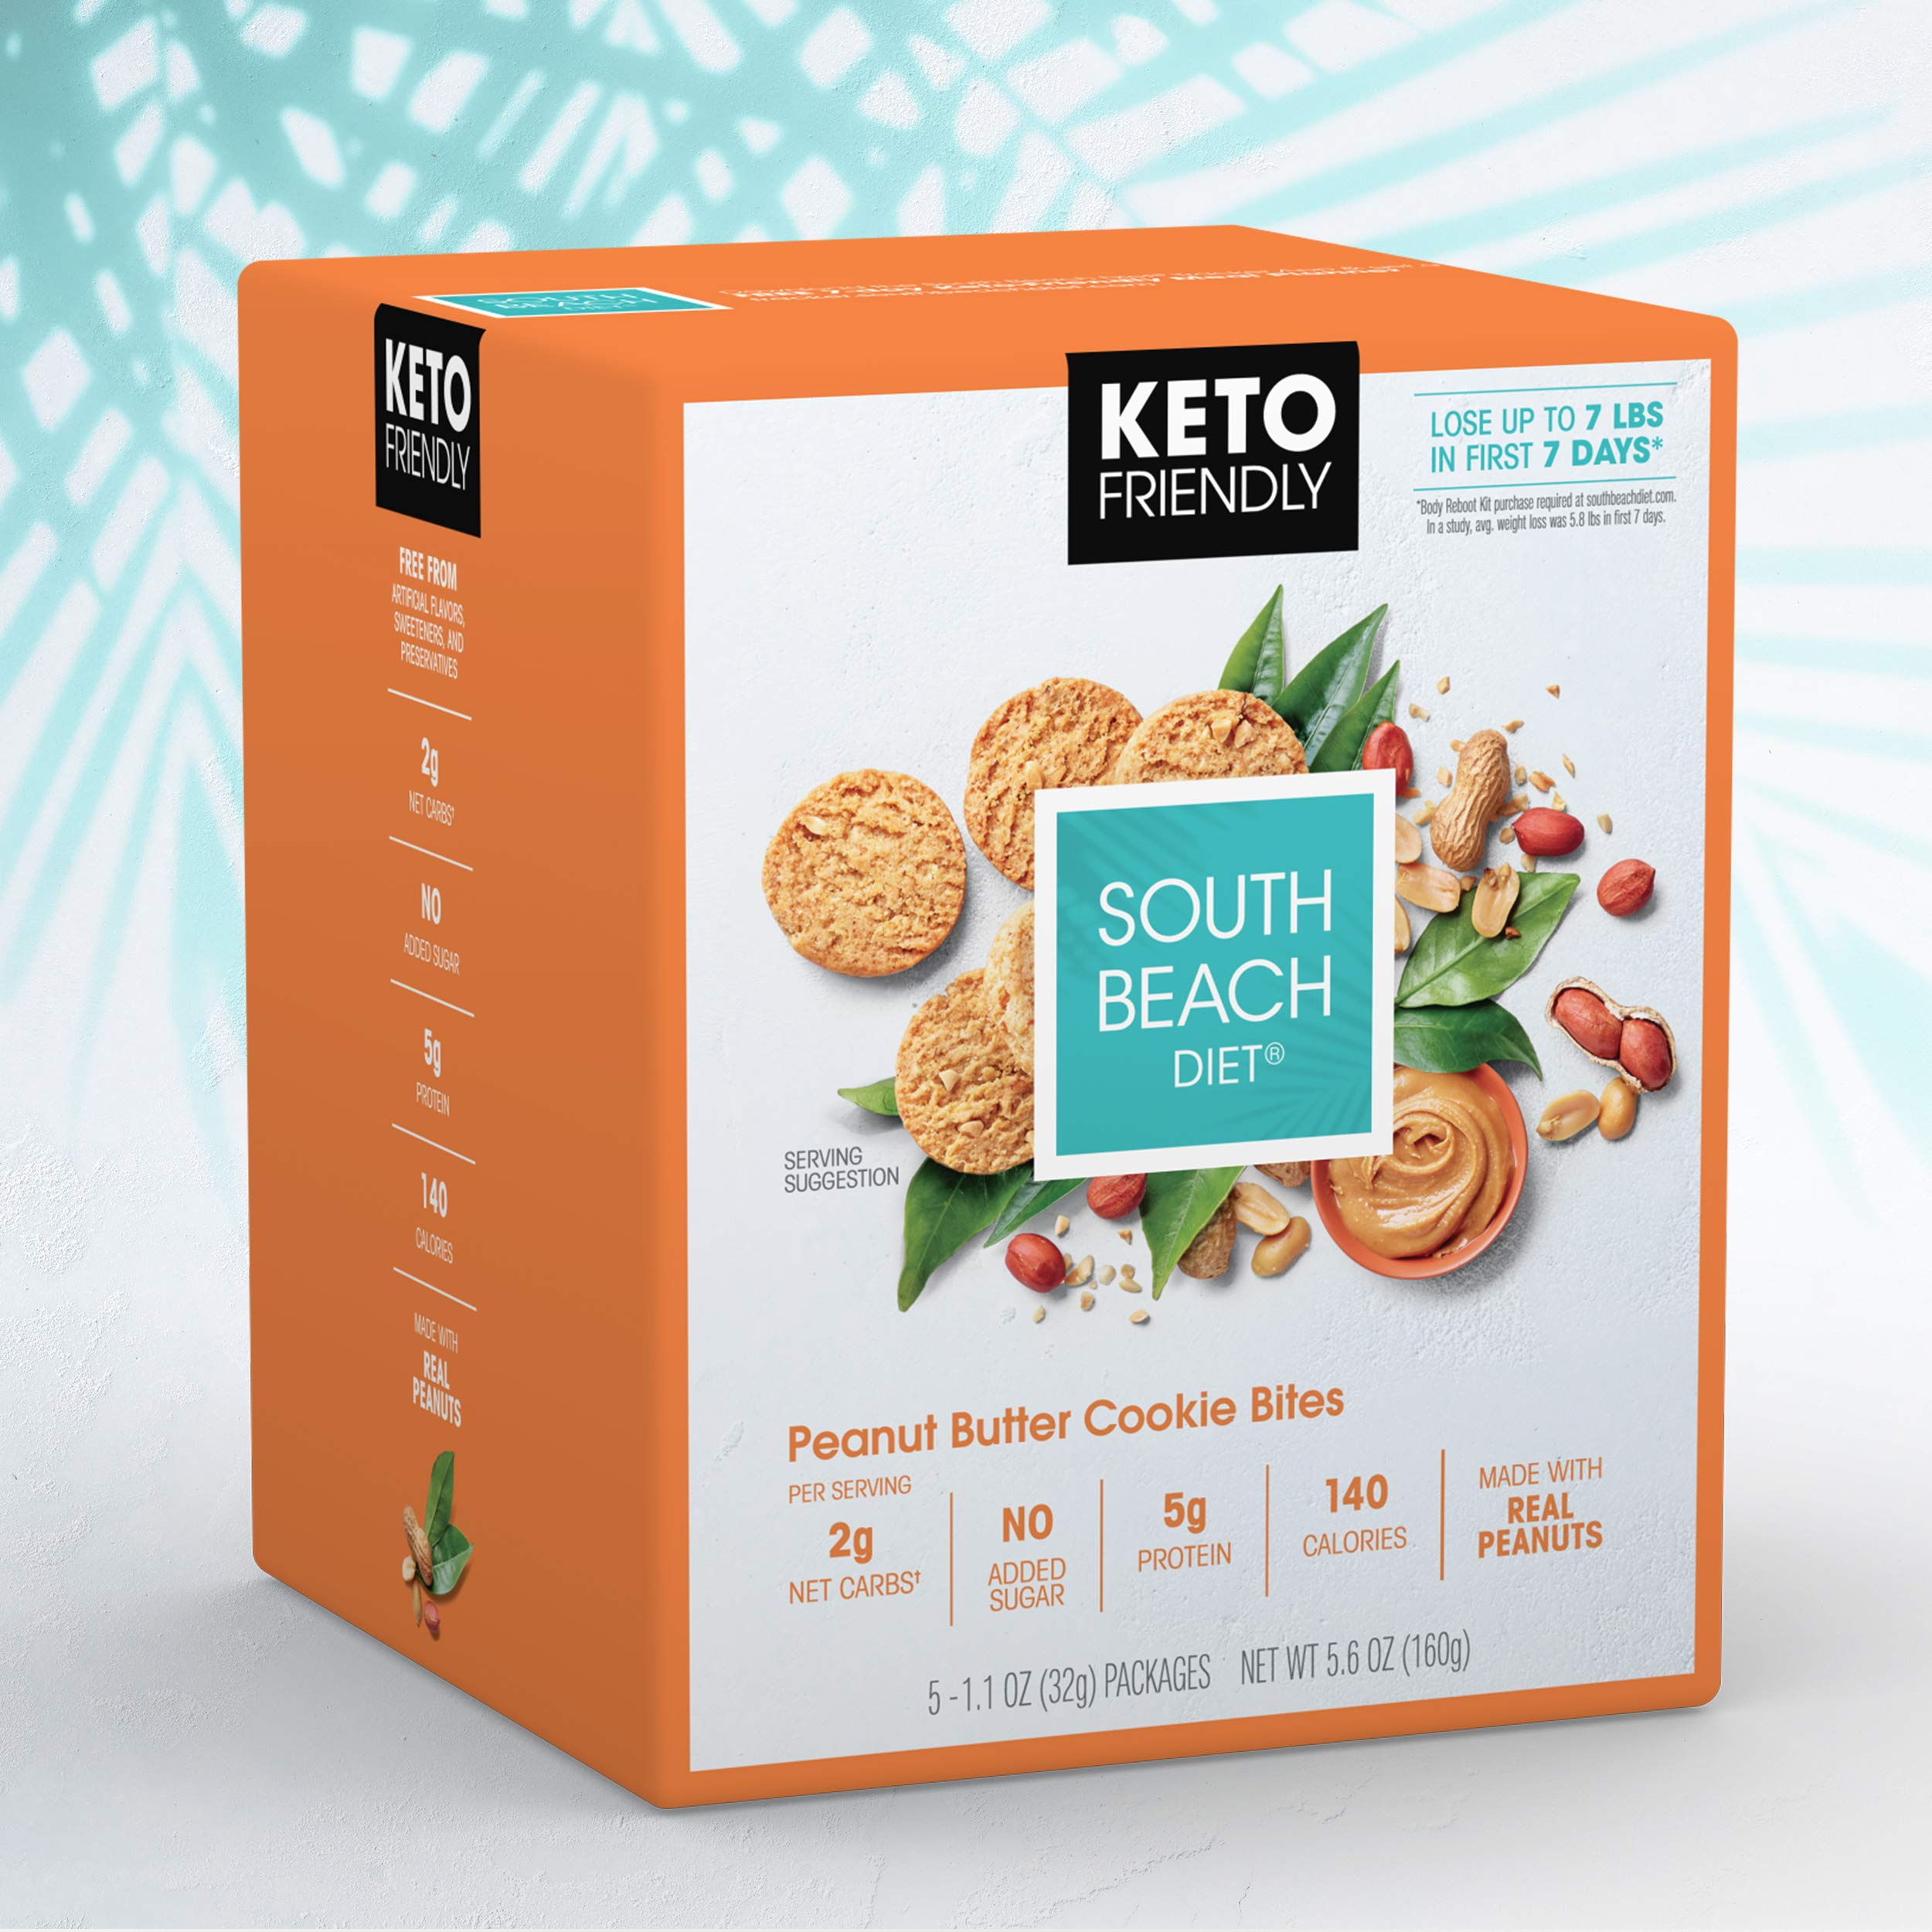 South Beach Diet® Peanut Butter Cookie Bites (20 ct) - Delicious Snacks Made to Support Healthy Weight Loss & Your Keto Lifestyle by South Beach Diet